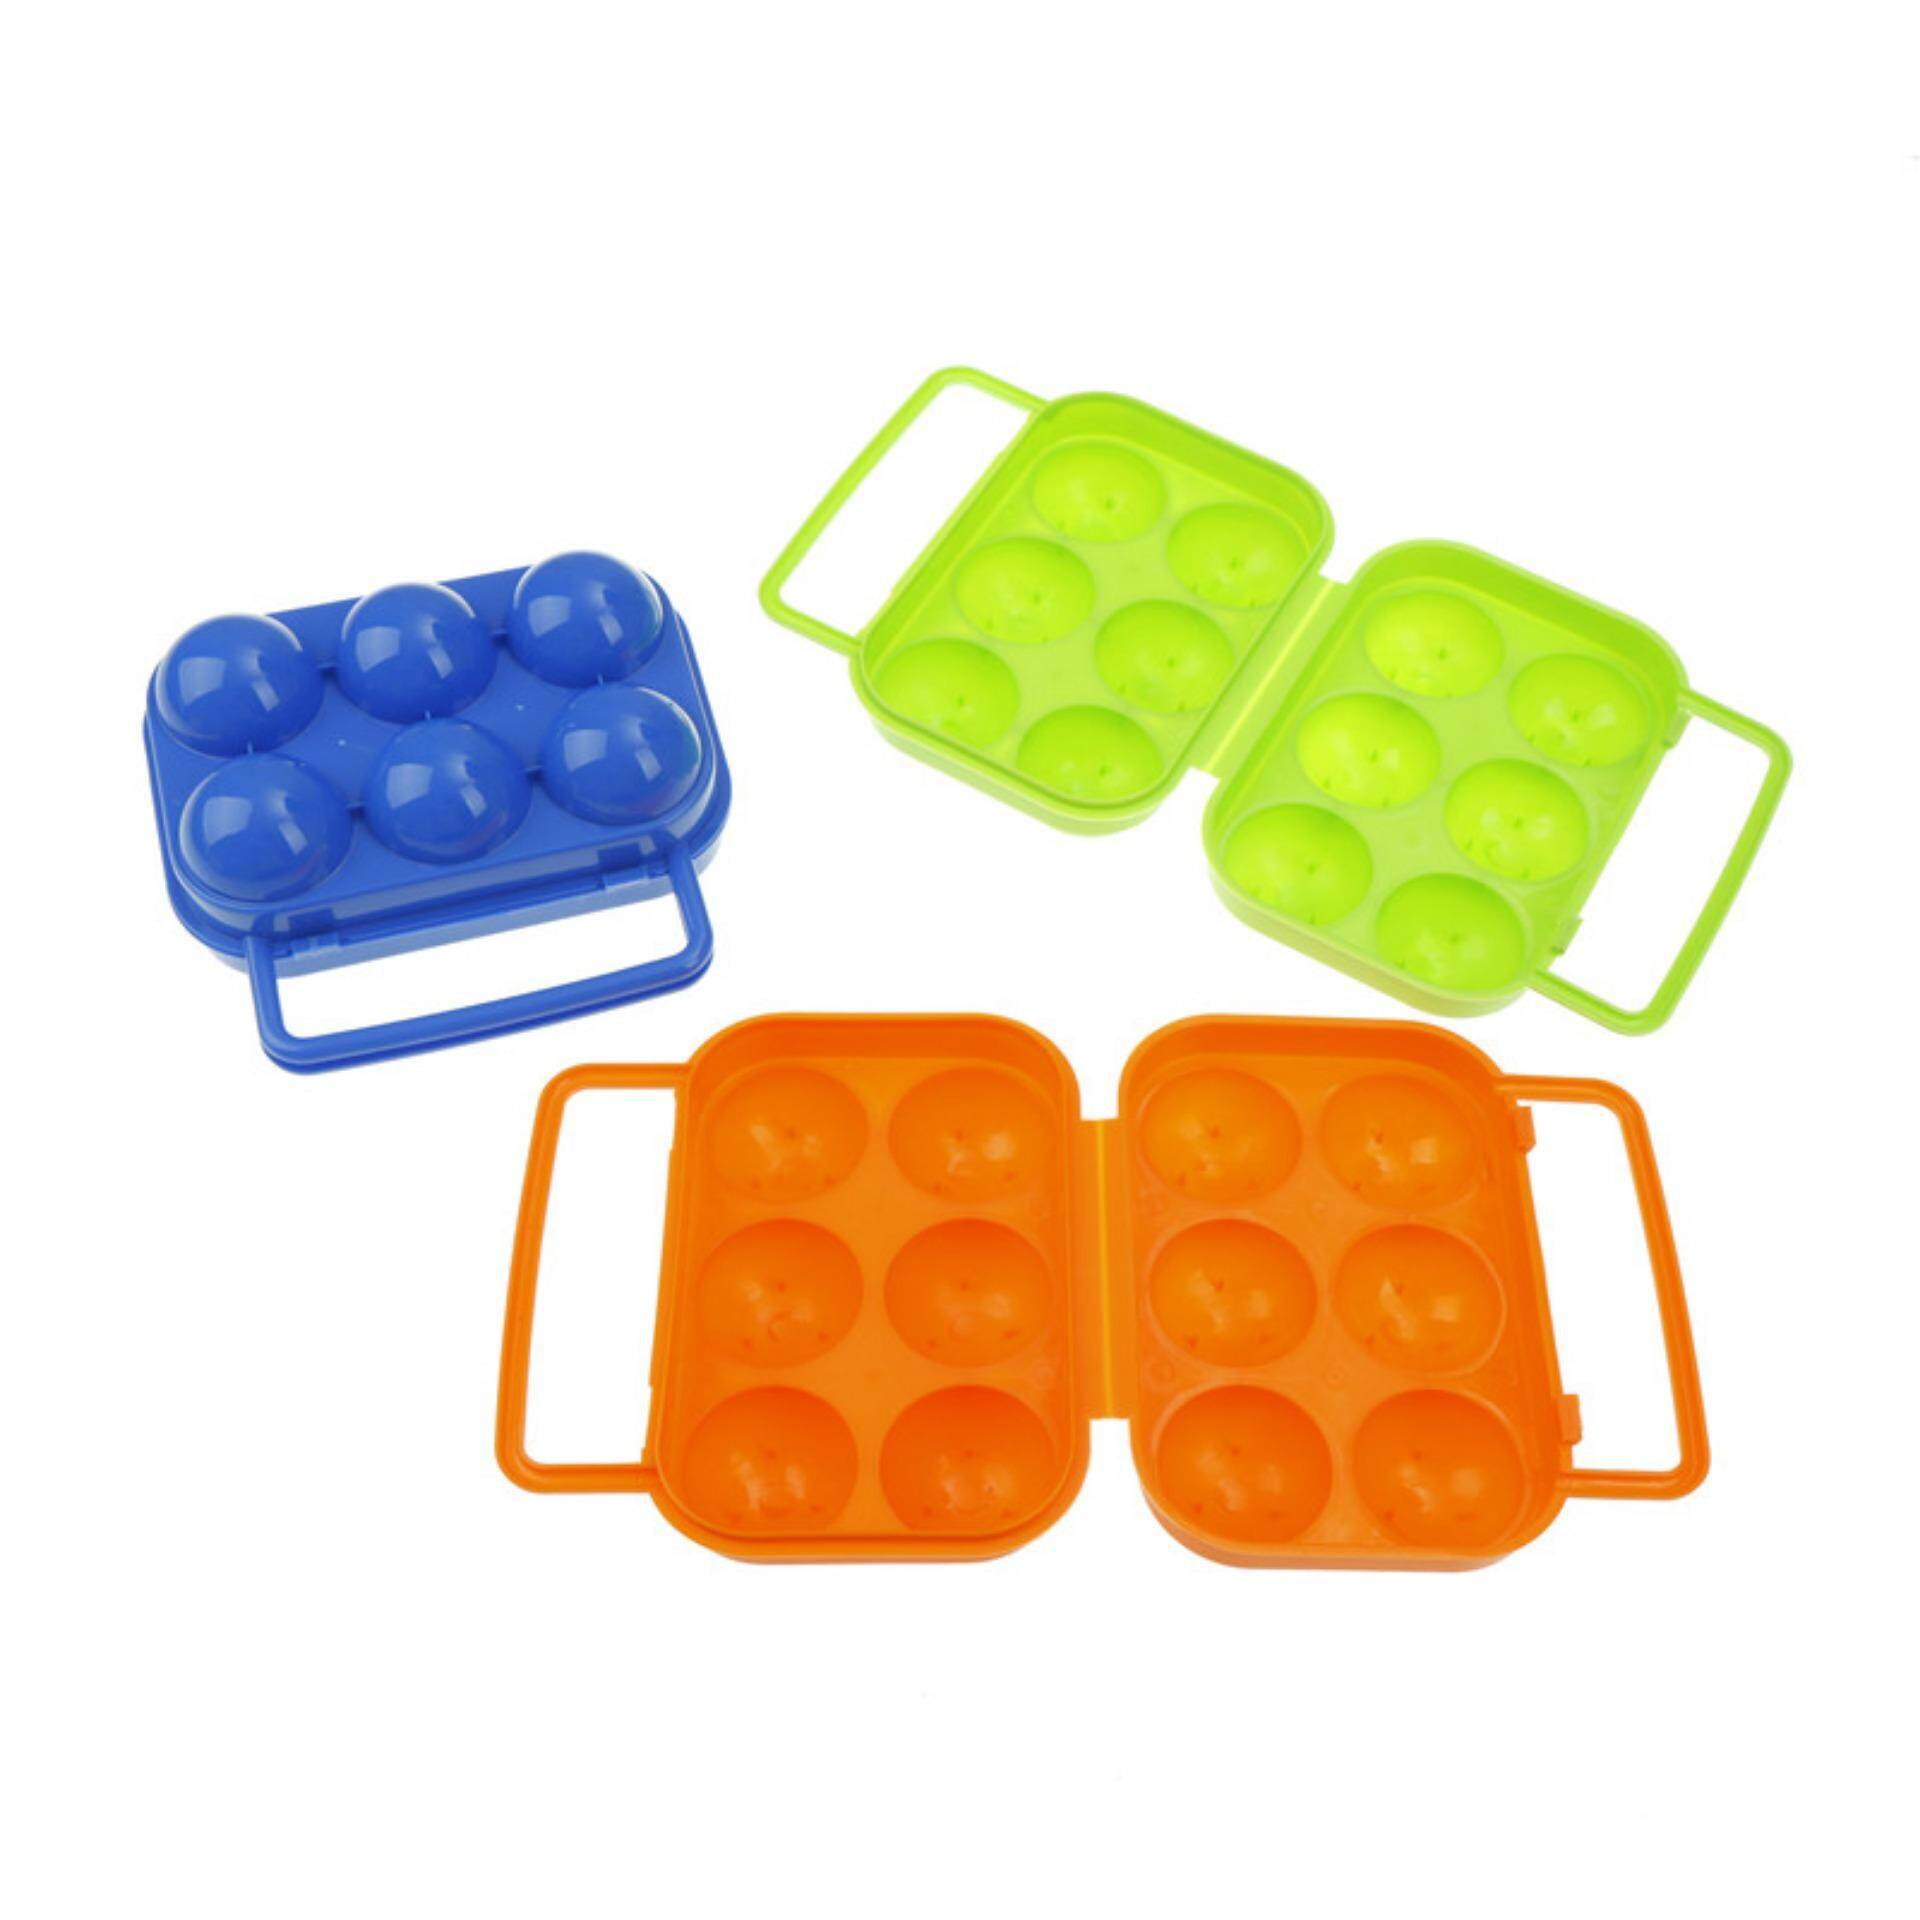 Detail Gambar Female Warrior Refrigerator Egg Storage Folding Box 6 Case Outdoor Portable Container Tray Green